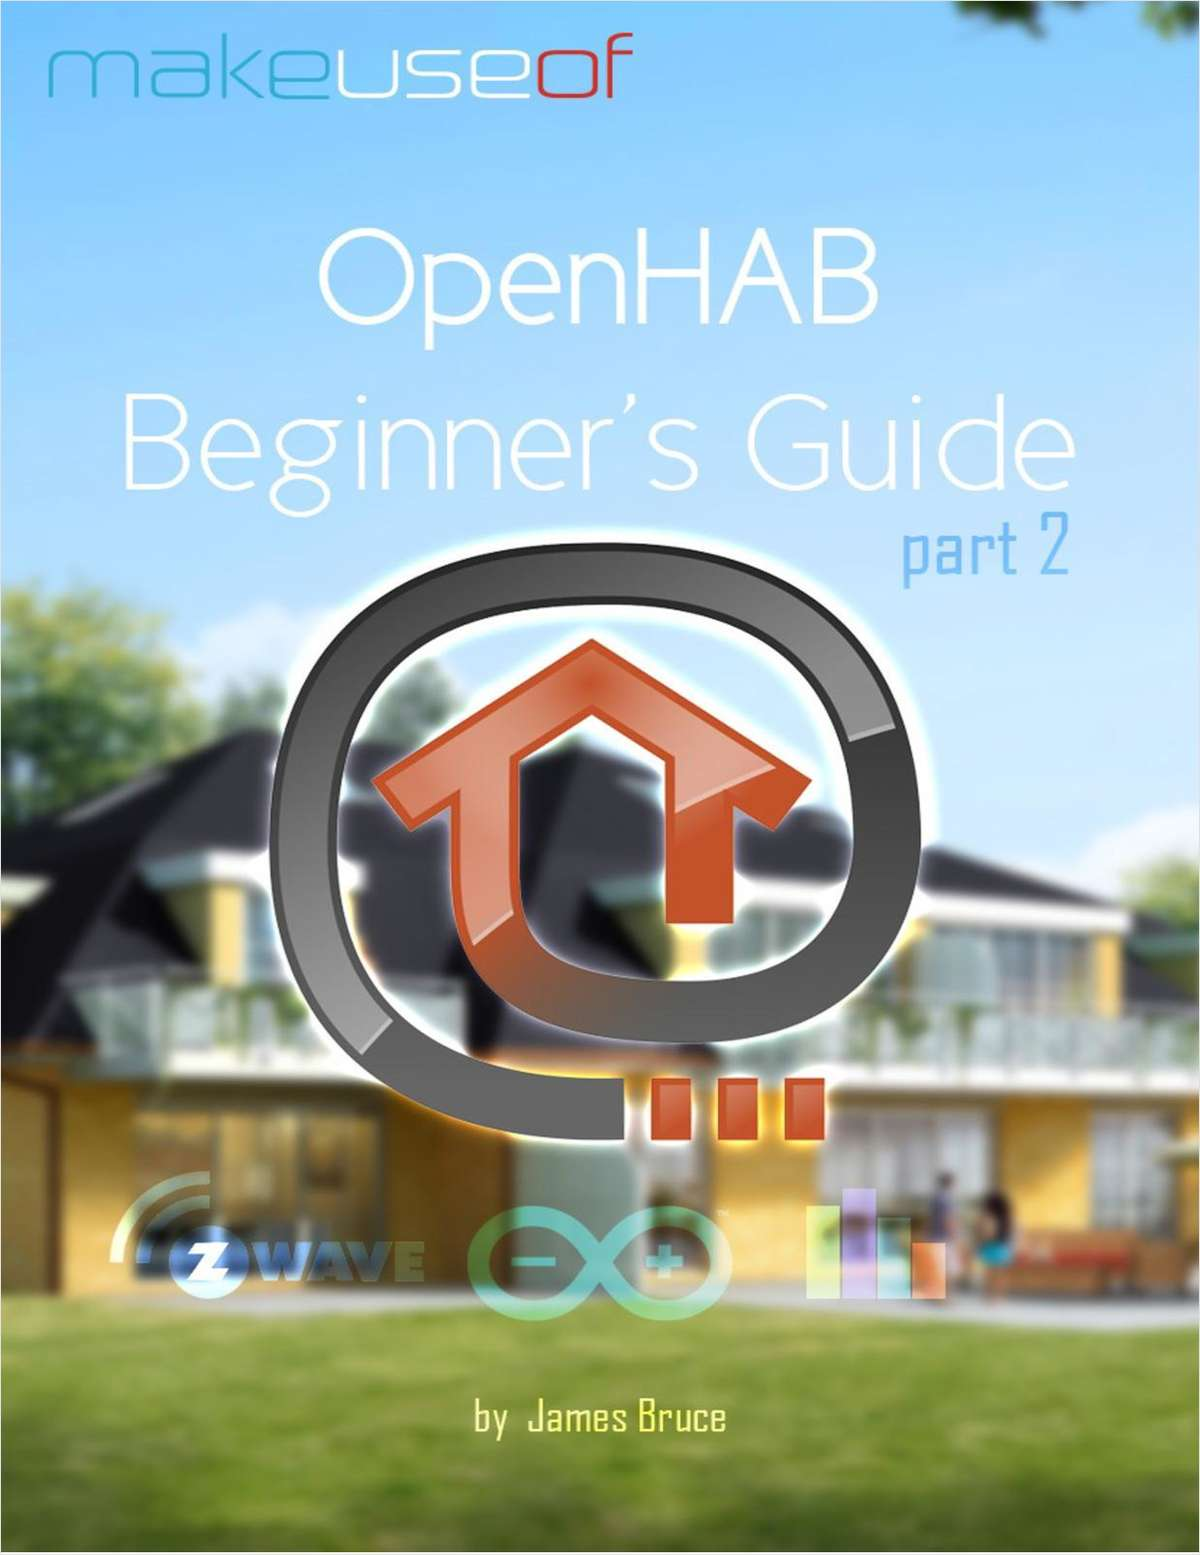 OpenHAB Beginner's Guide: ZWave, MQTT, Rules and Charting